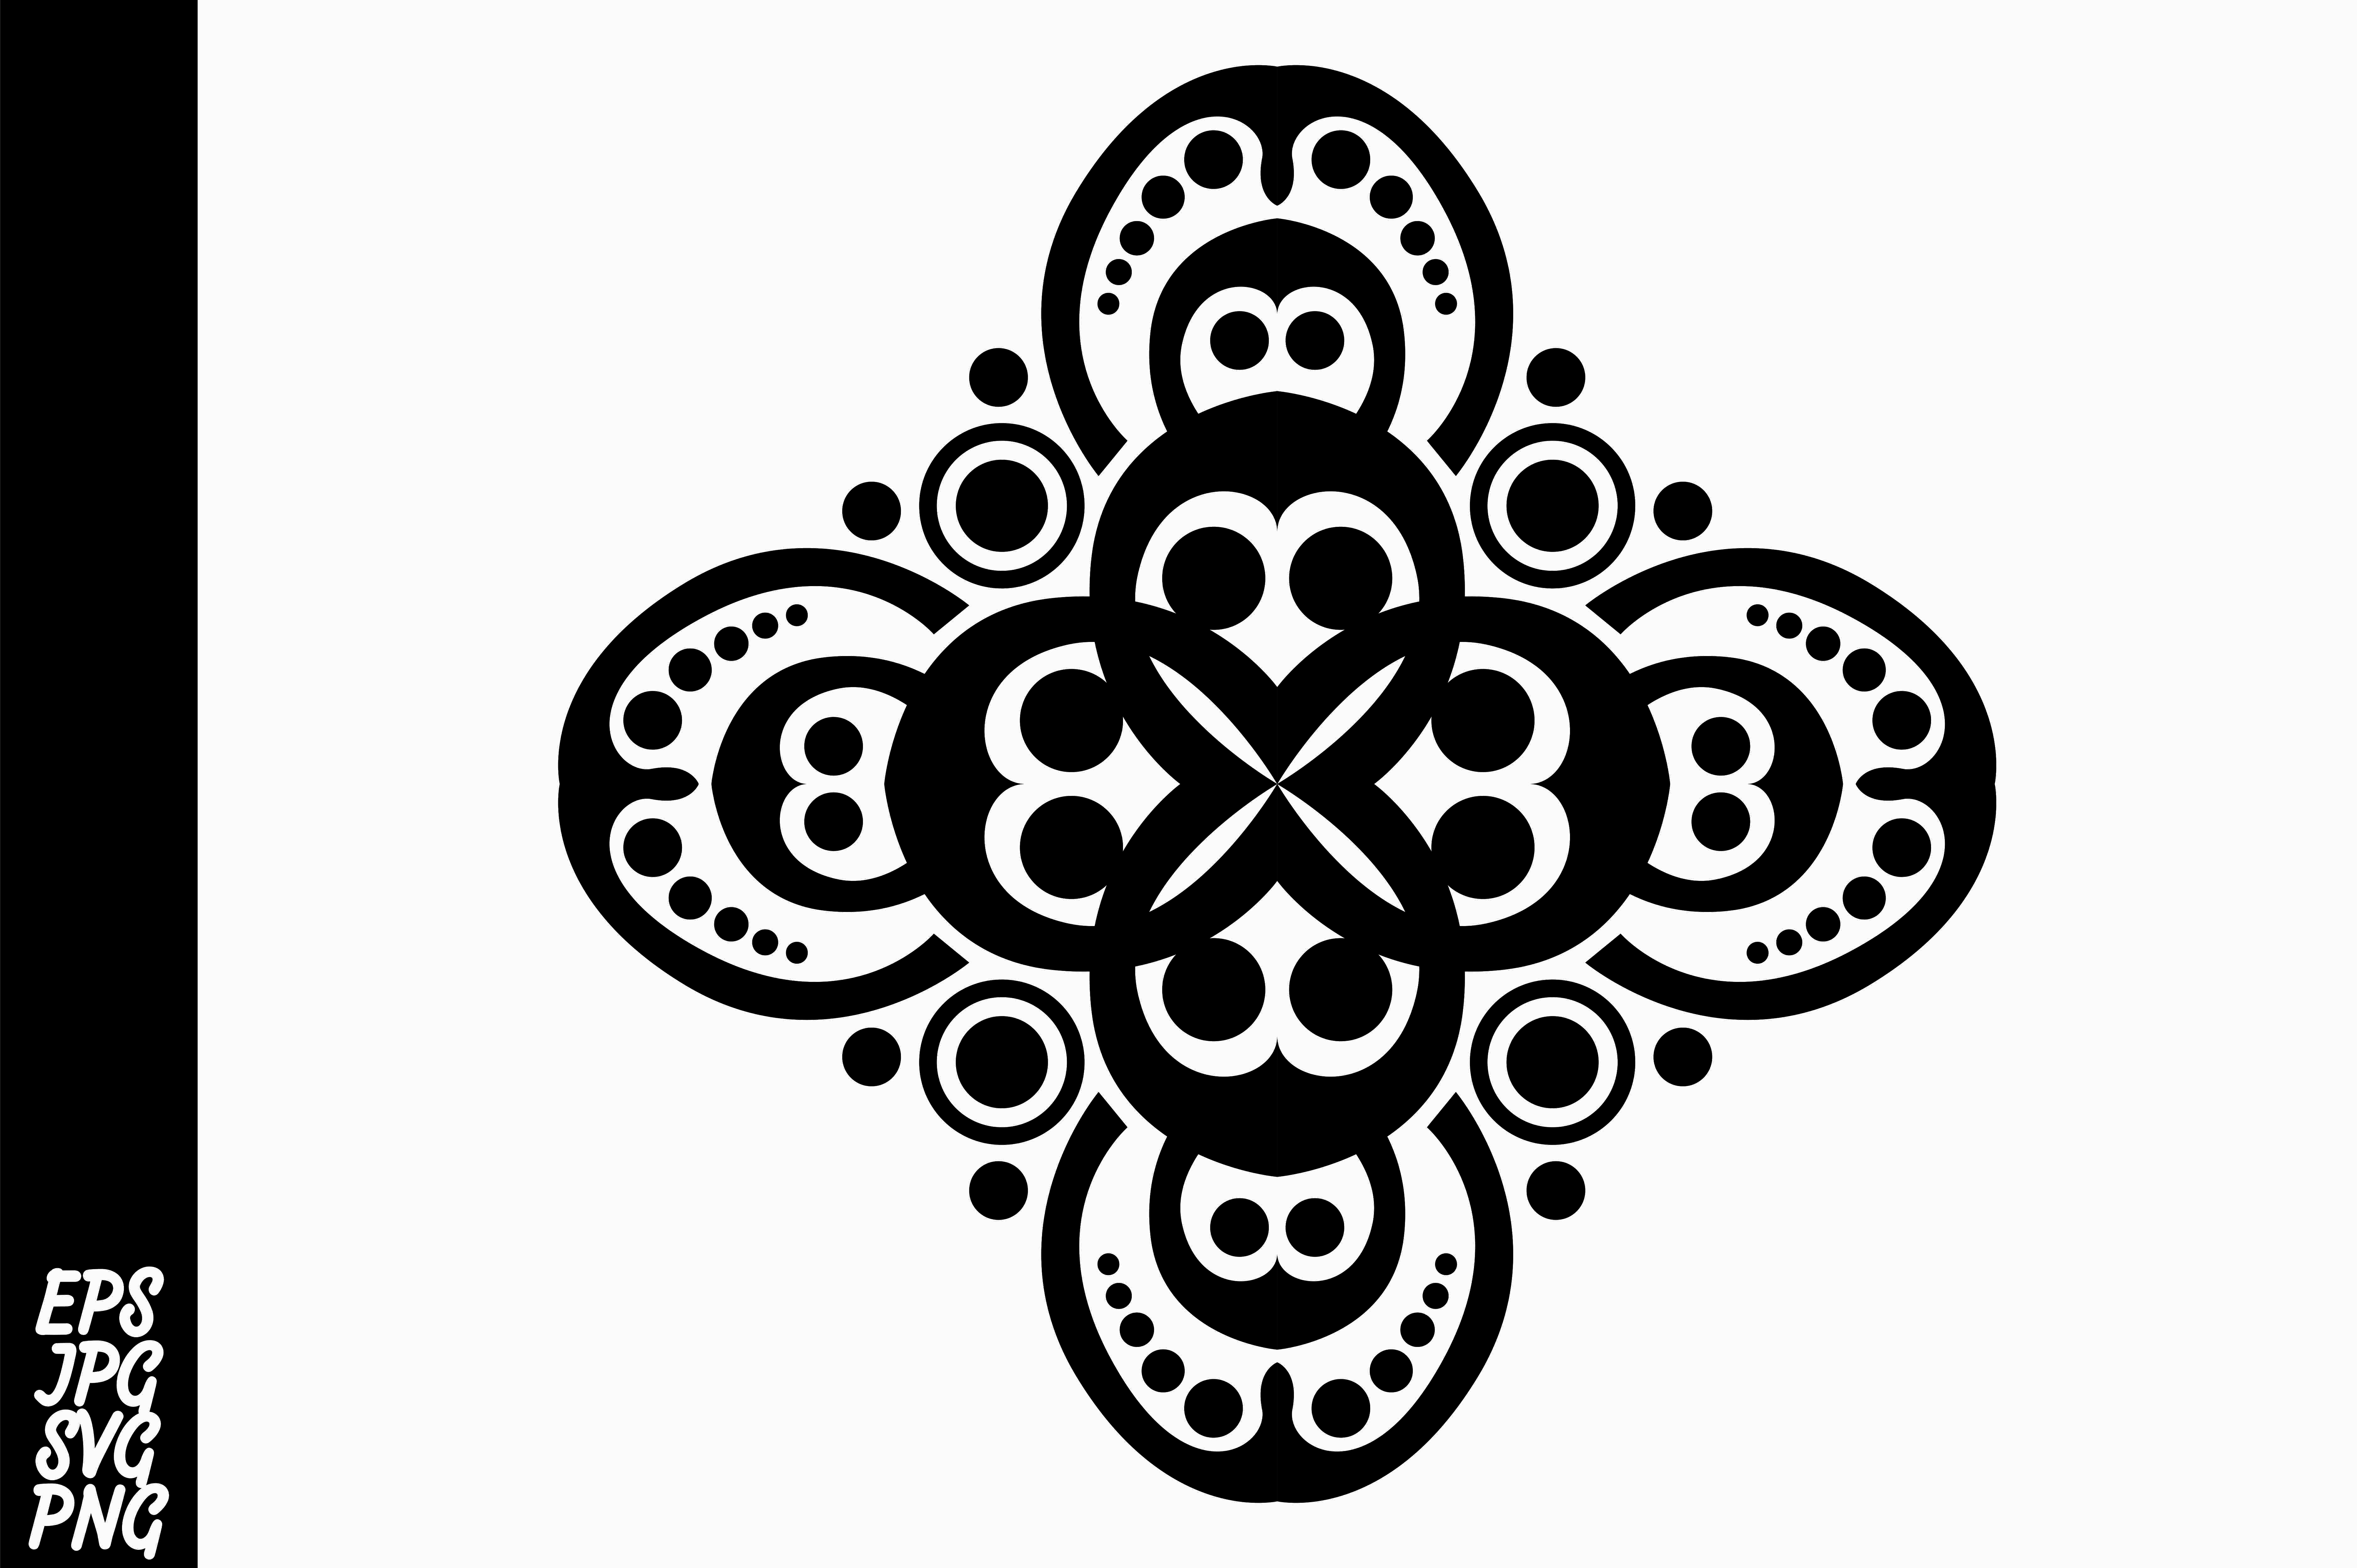 Download Free Ornament Svg Graphic By Arief Sapta Adjie Ii Creative Fabrica for Cricut Explore, Silhouette and other cutting machines.